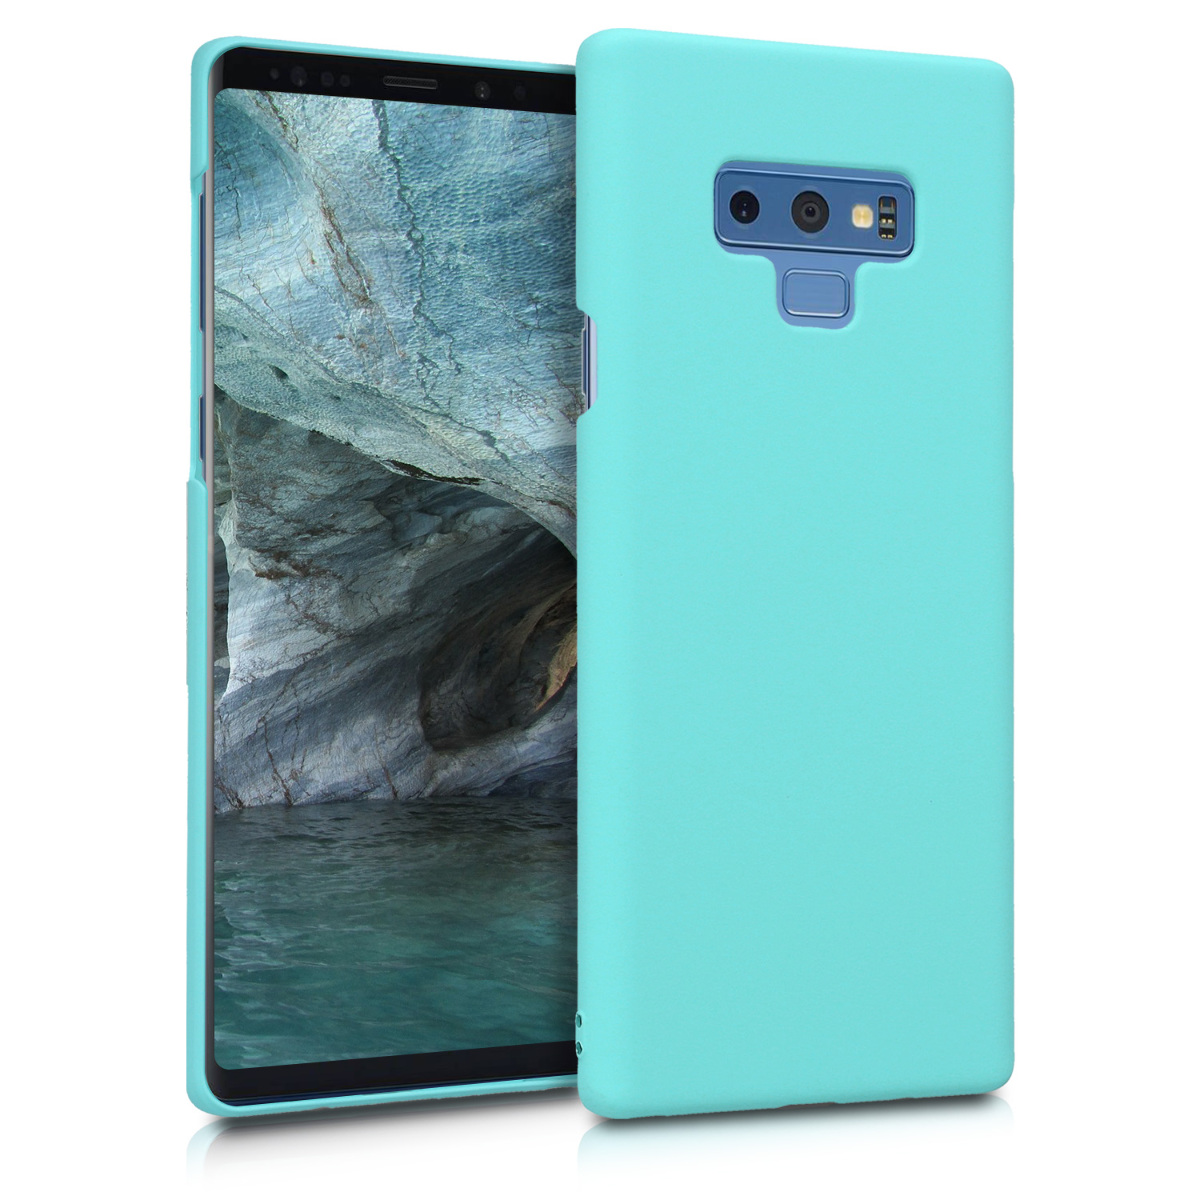 KW Σκληρή θήκη - Samsung Galaxy Note 9 -  Mint Matte (45748.50)